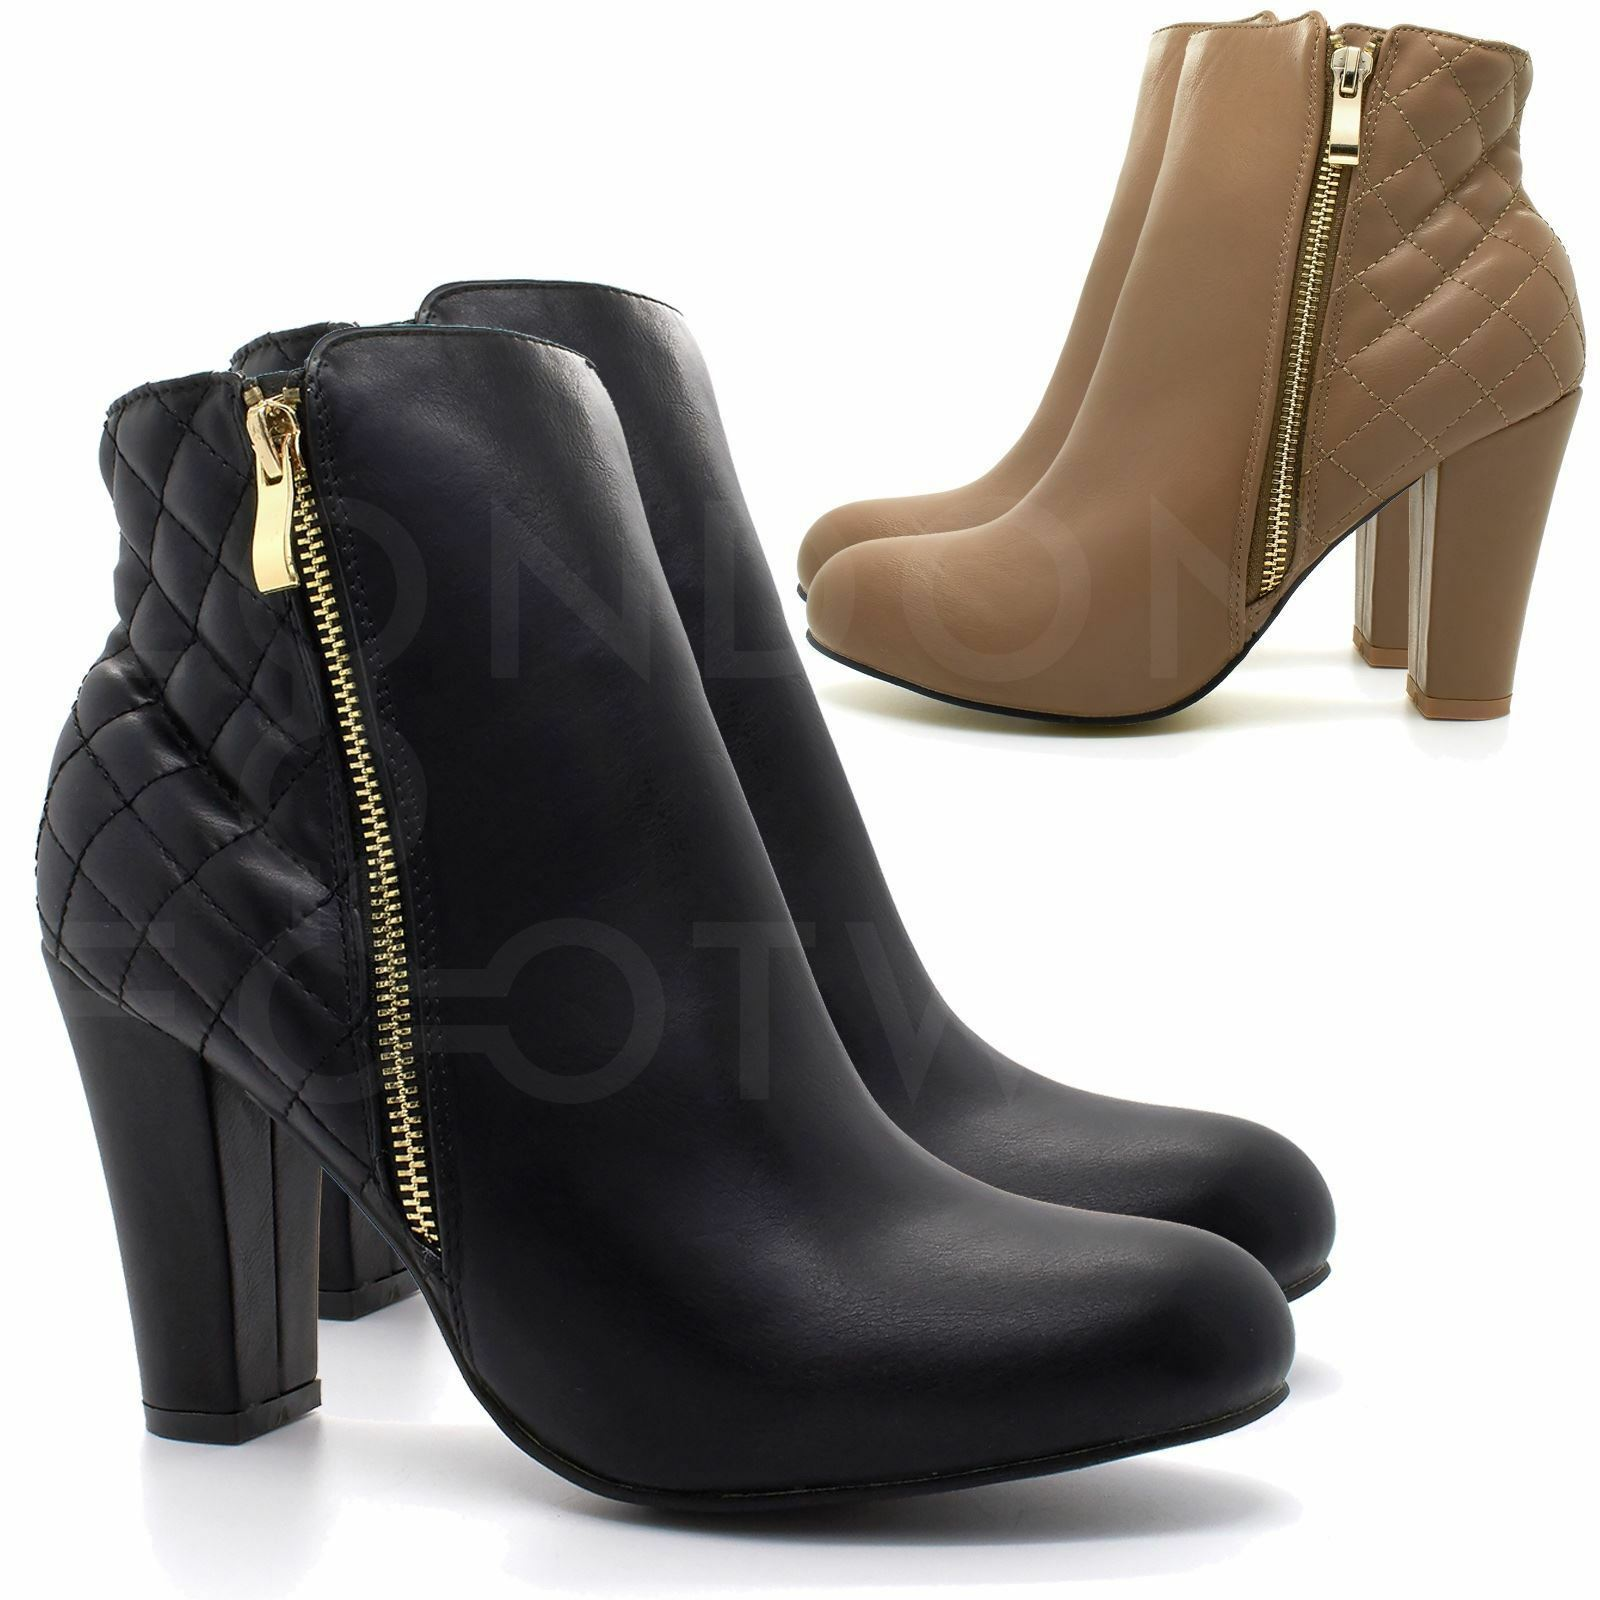 New Womens Chelsea Ankle Boots Ladies Mid High Chunky Block Heel Zip Up Shoe UK